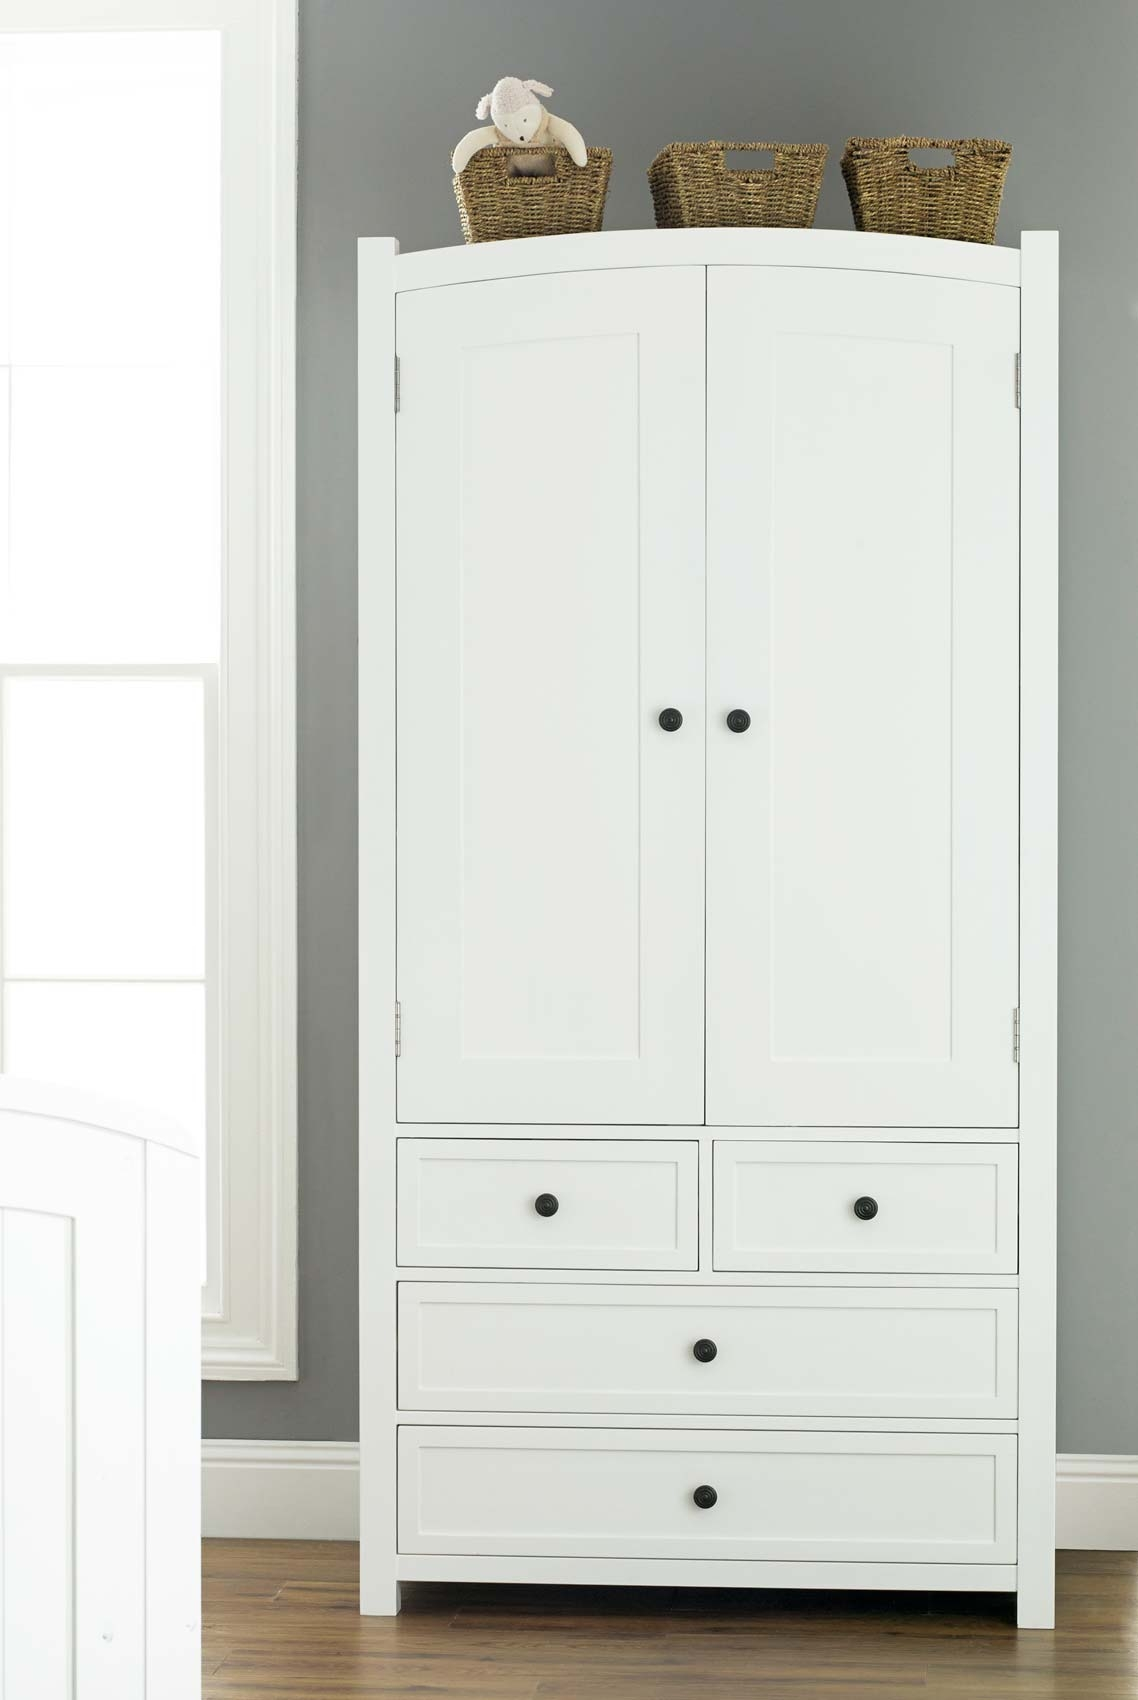 Doorless Kids Wardrobe With Drawers From Light Wood Material With Wardrobes With Shelves And Drawers (Image 8 of 15)